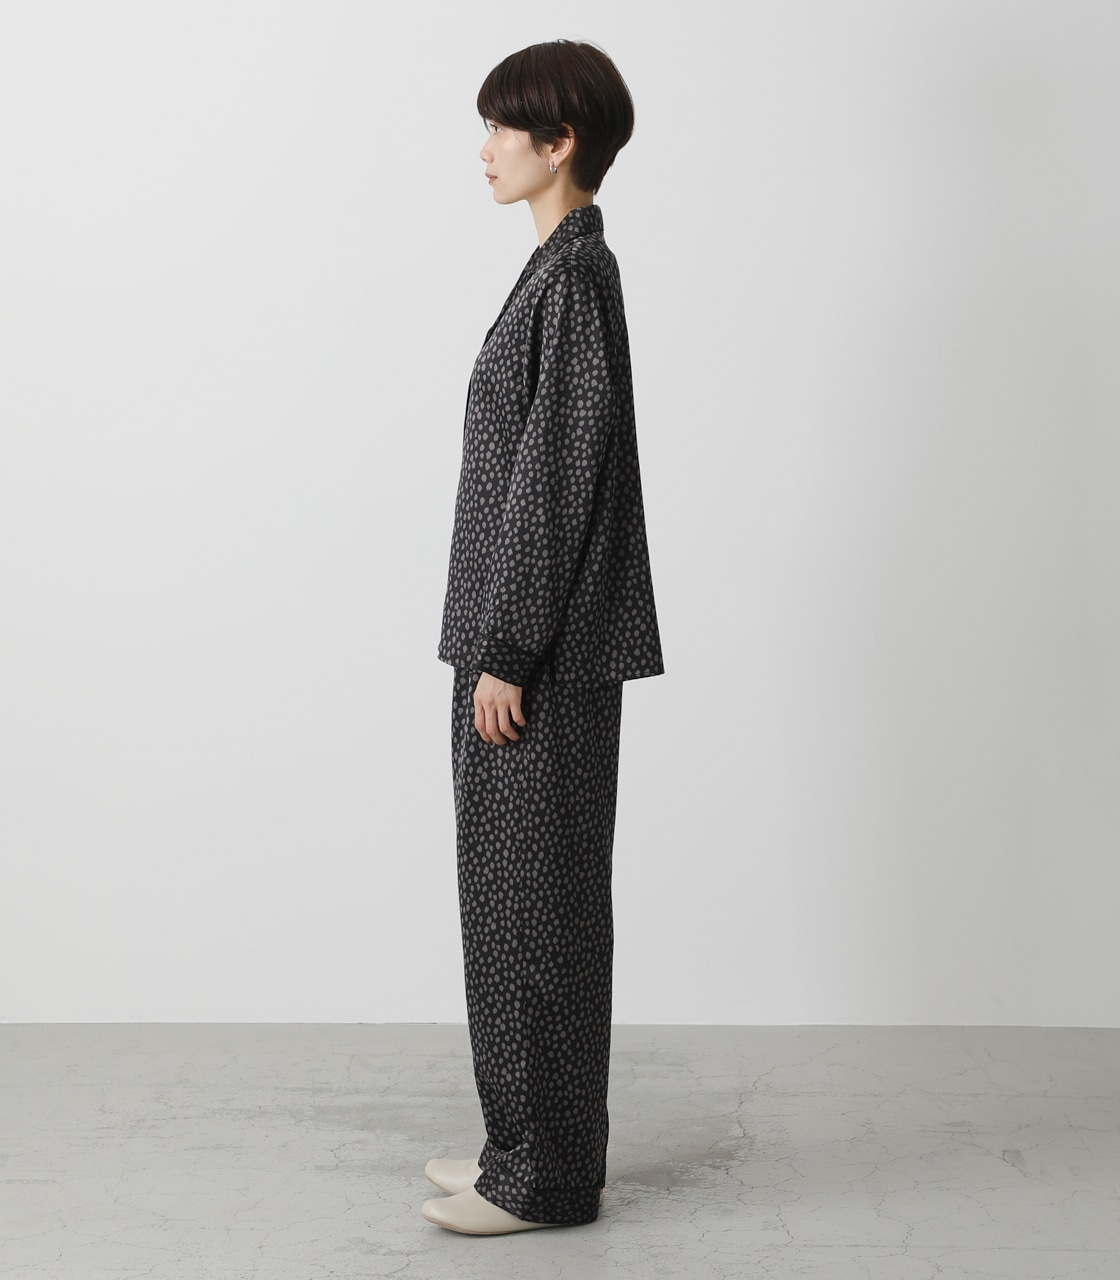 T/H SATIN L/S PAJAMAS/T/Hサテンロングスリーブパジャマ 詳細画像 柄BLK 6